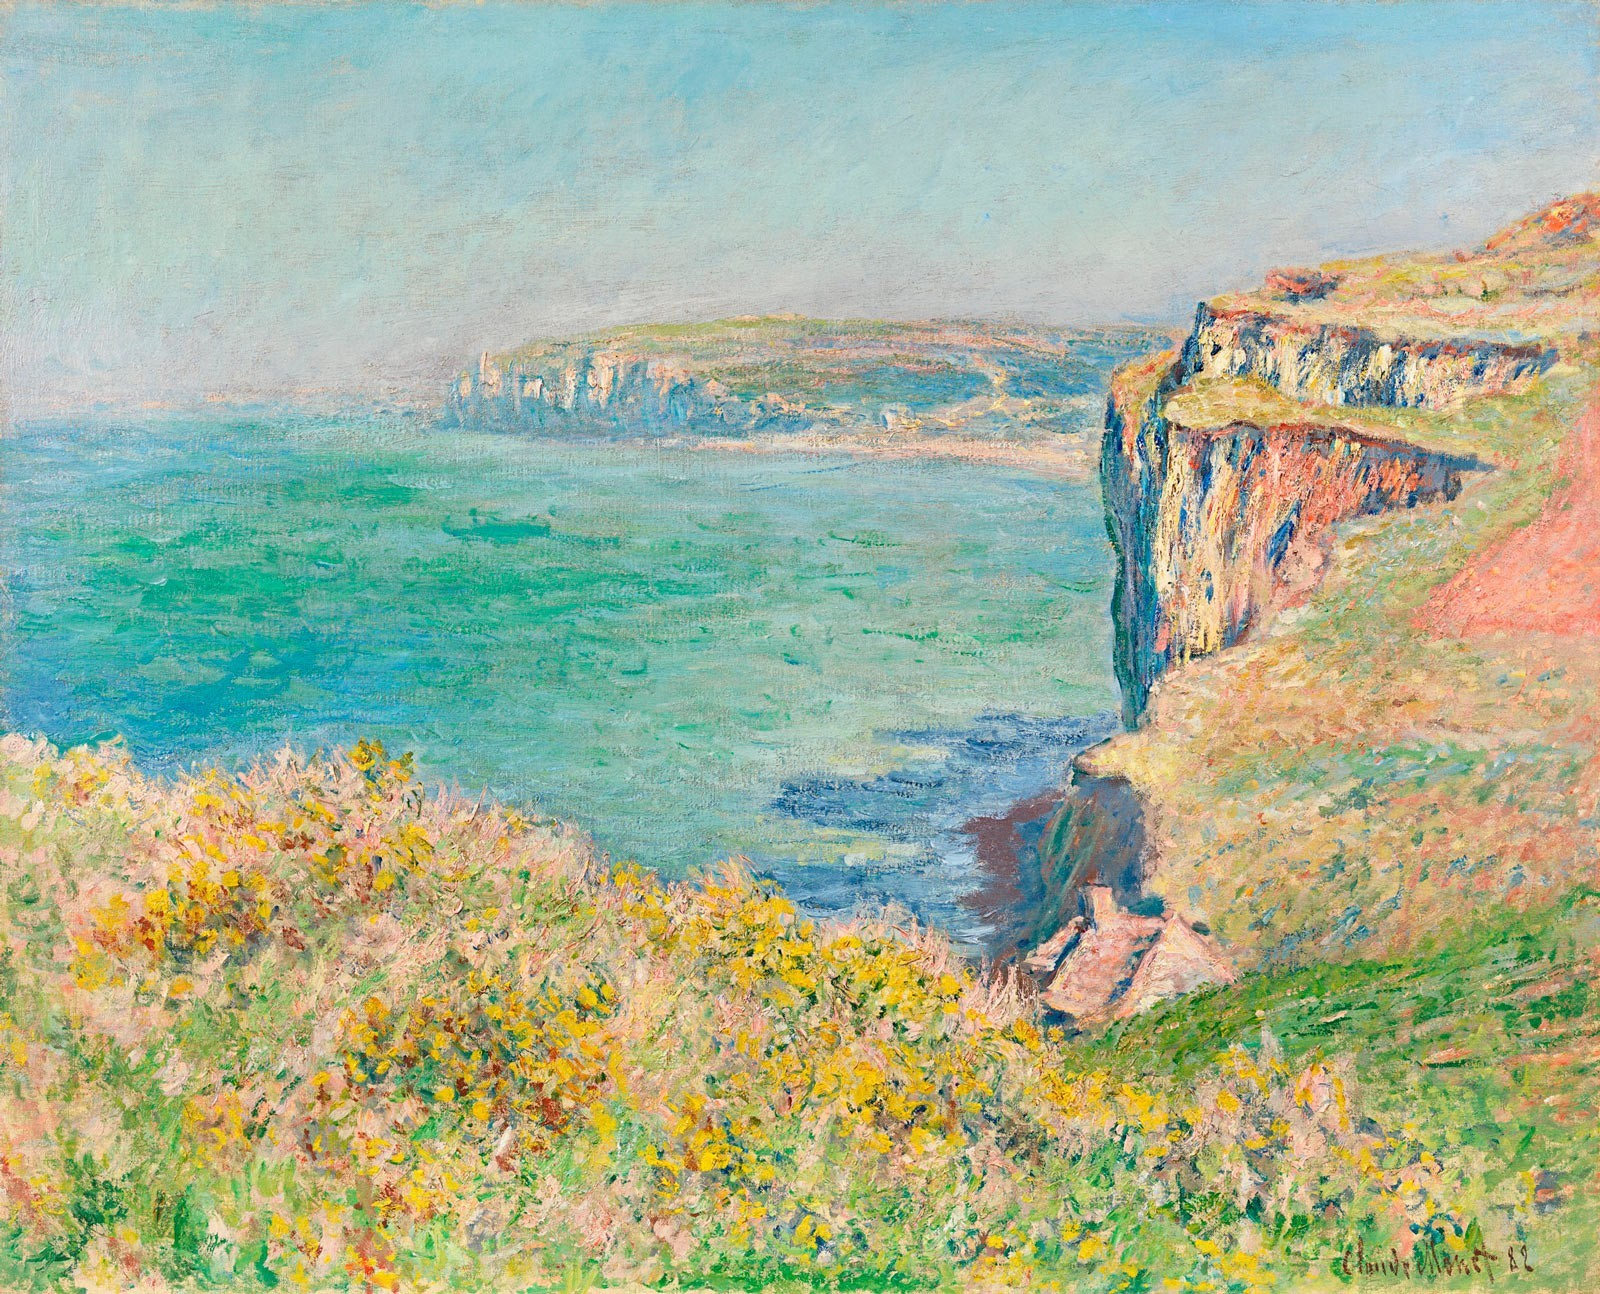 Normandy scene on loan to the National Gallery, London's exhibition Monet and Architecture